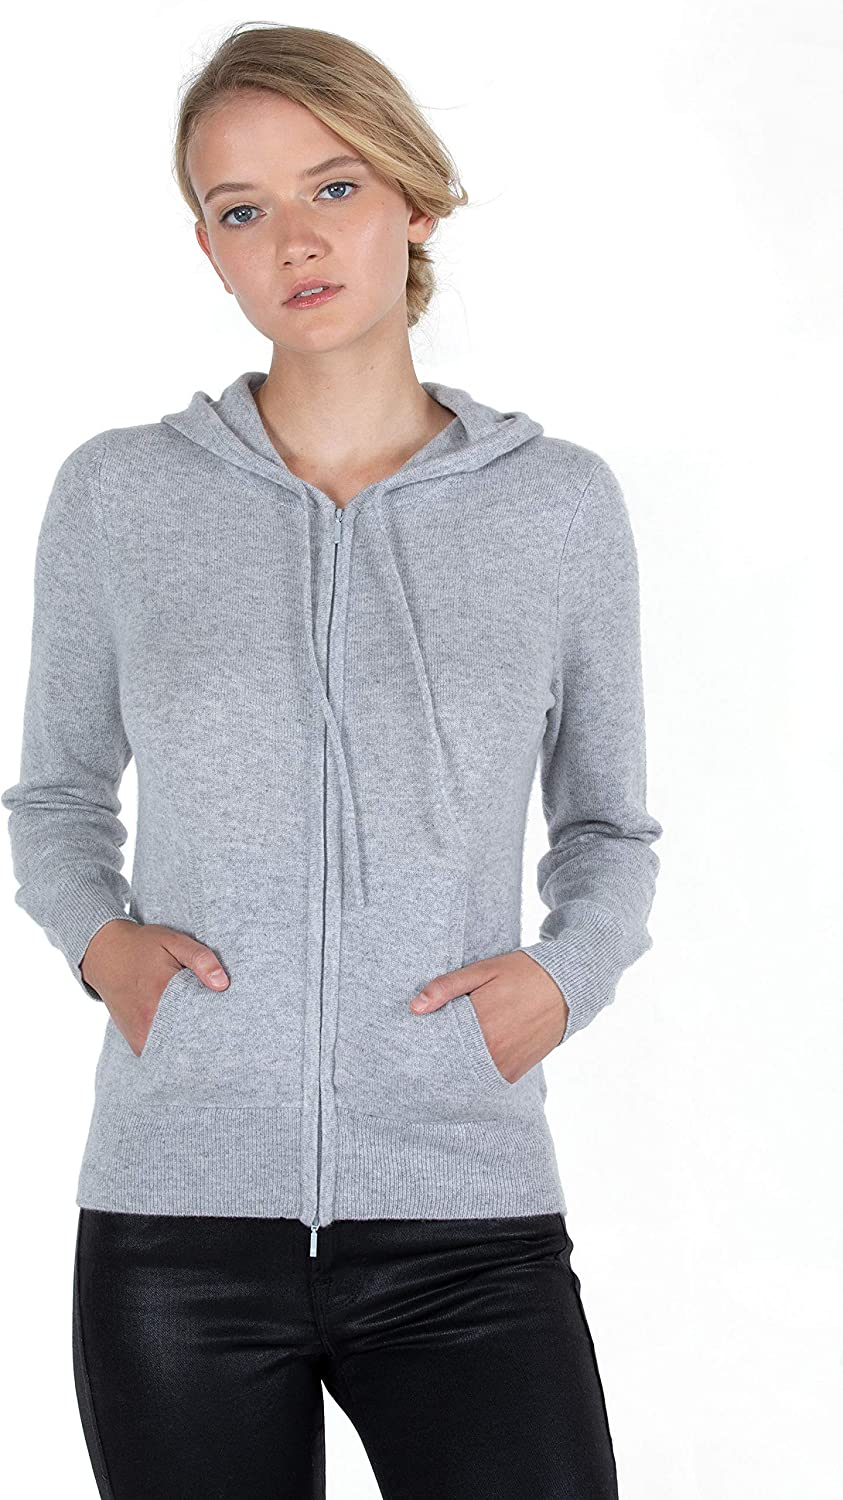 JENNIE LIU Women's 100% Pure Cashmere Hoodie Long Zip Sleeve Car SEAL Columbus Mall limited product